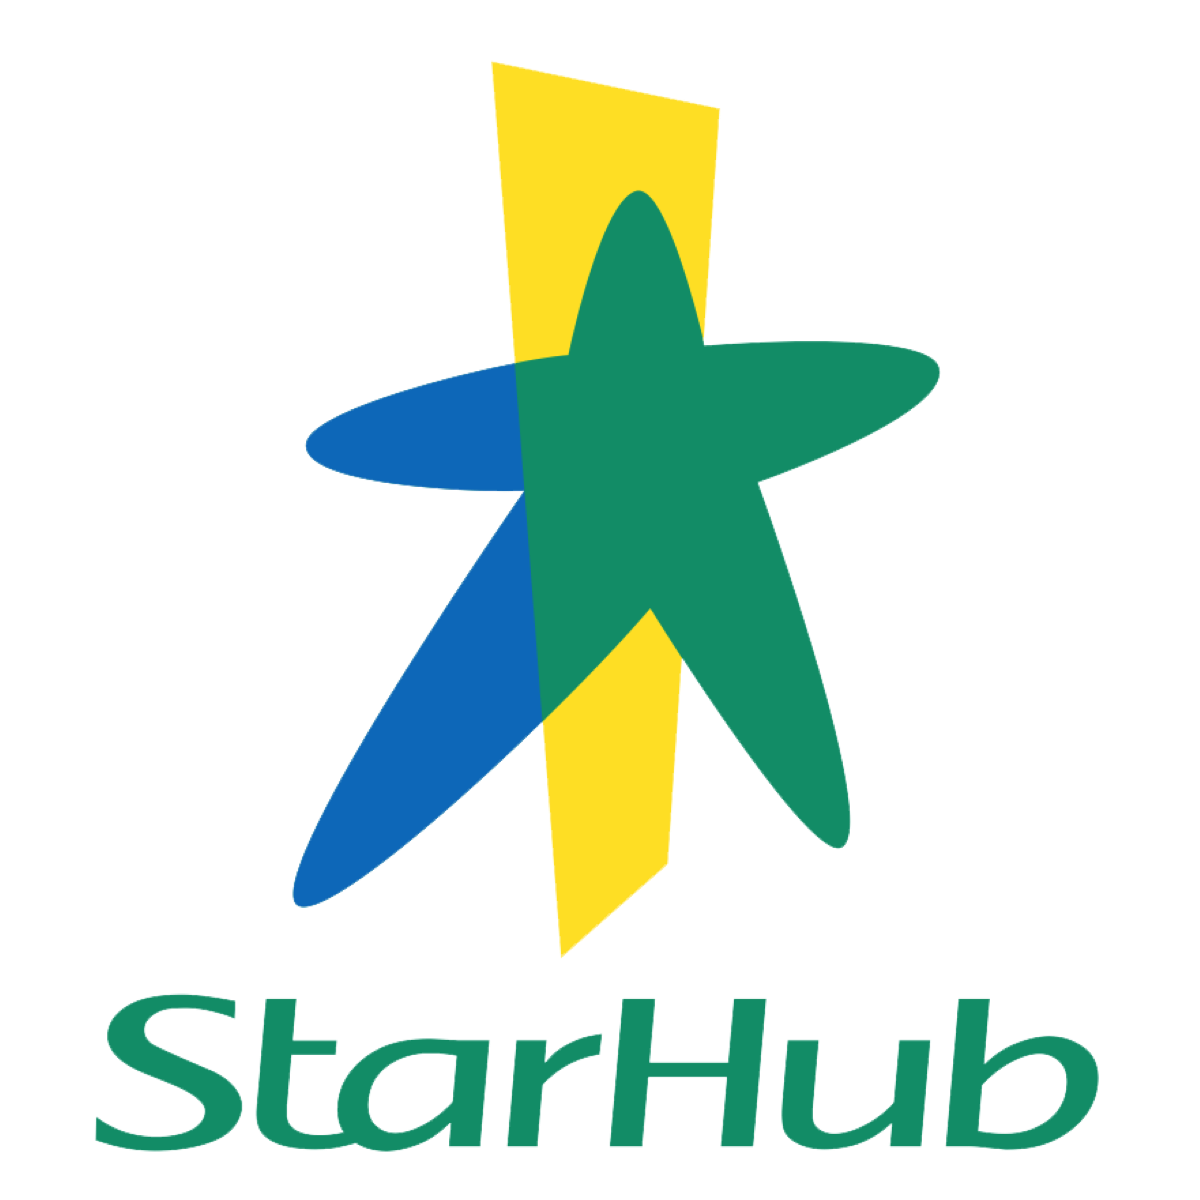 Starhub - CIMB Research 2018-02-15: 4Q17 Earnings Missed; Grim FY18 Guidance